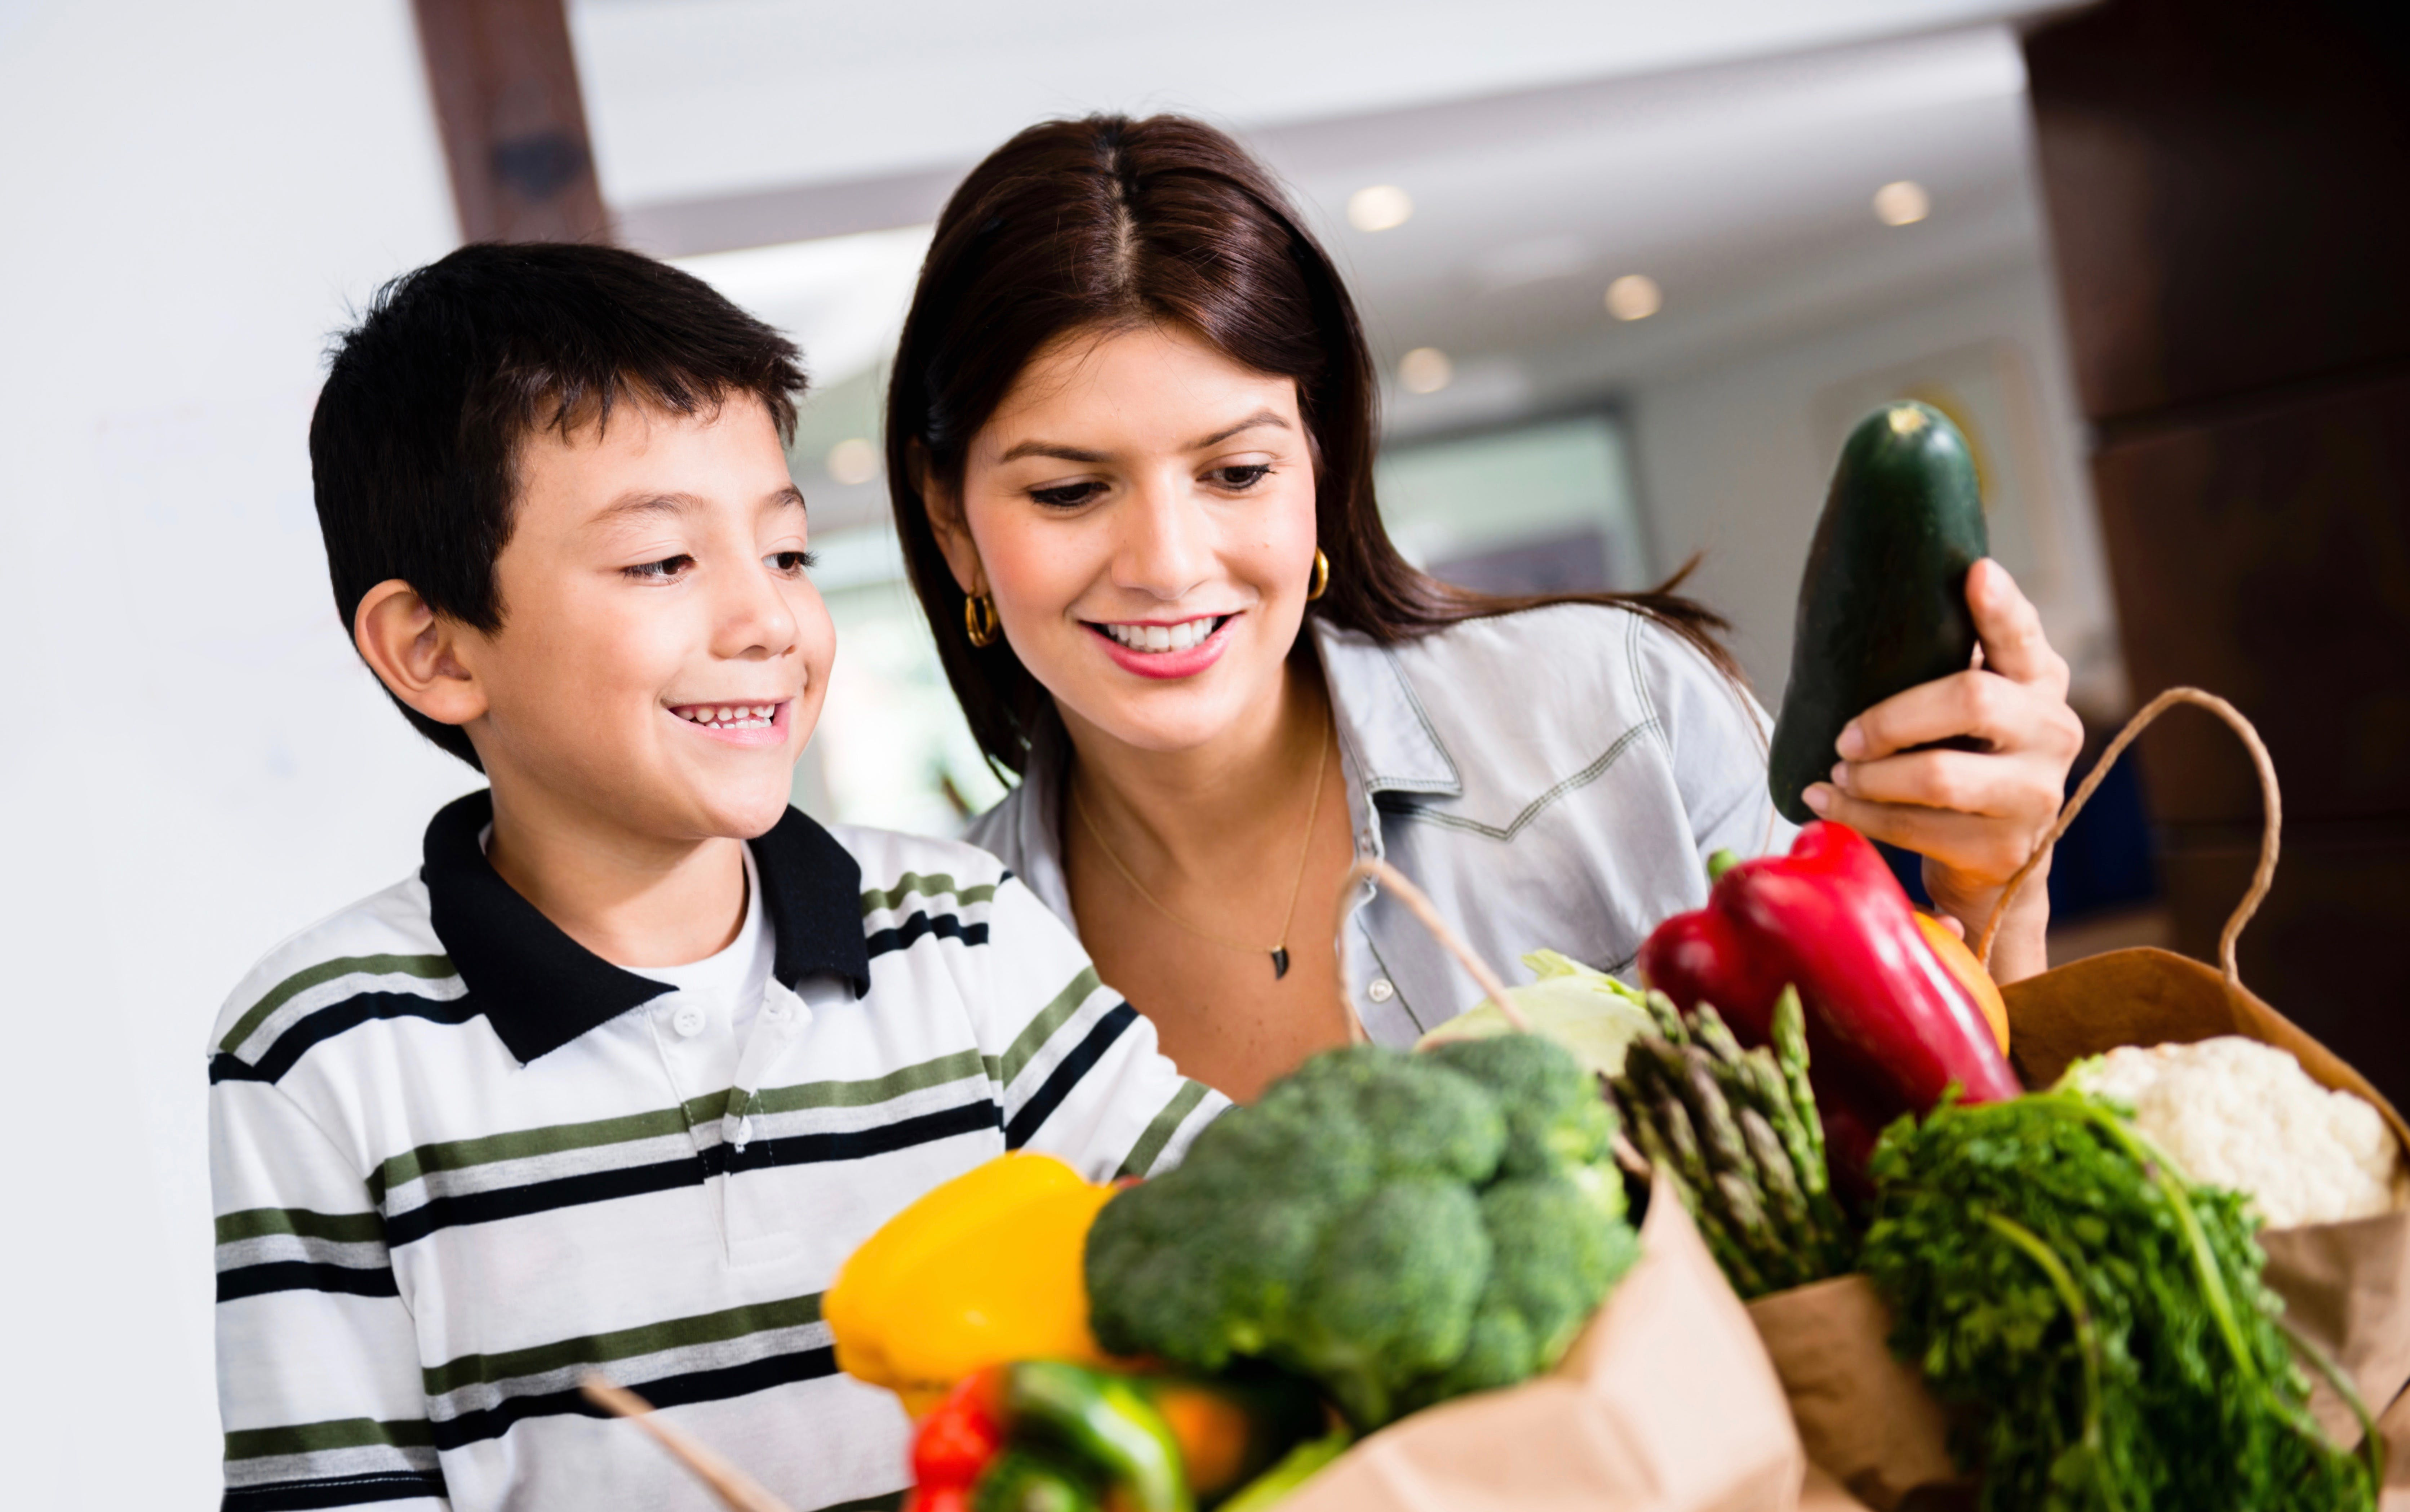 Mother and son organizing groceries